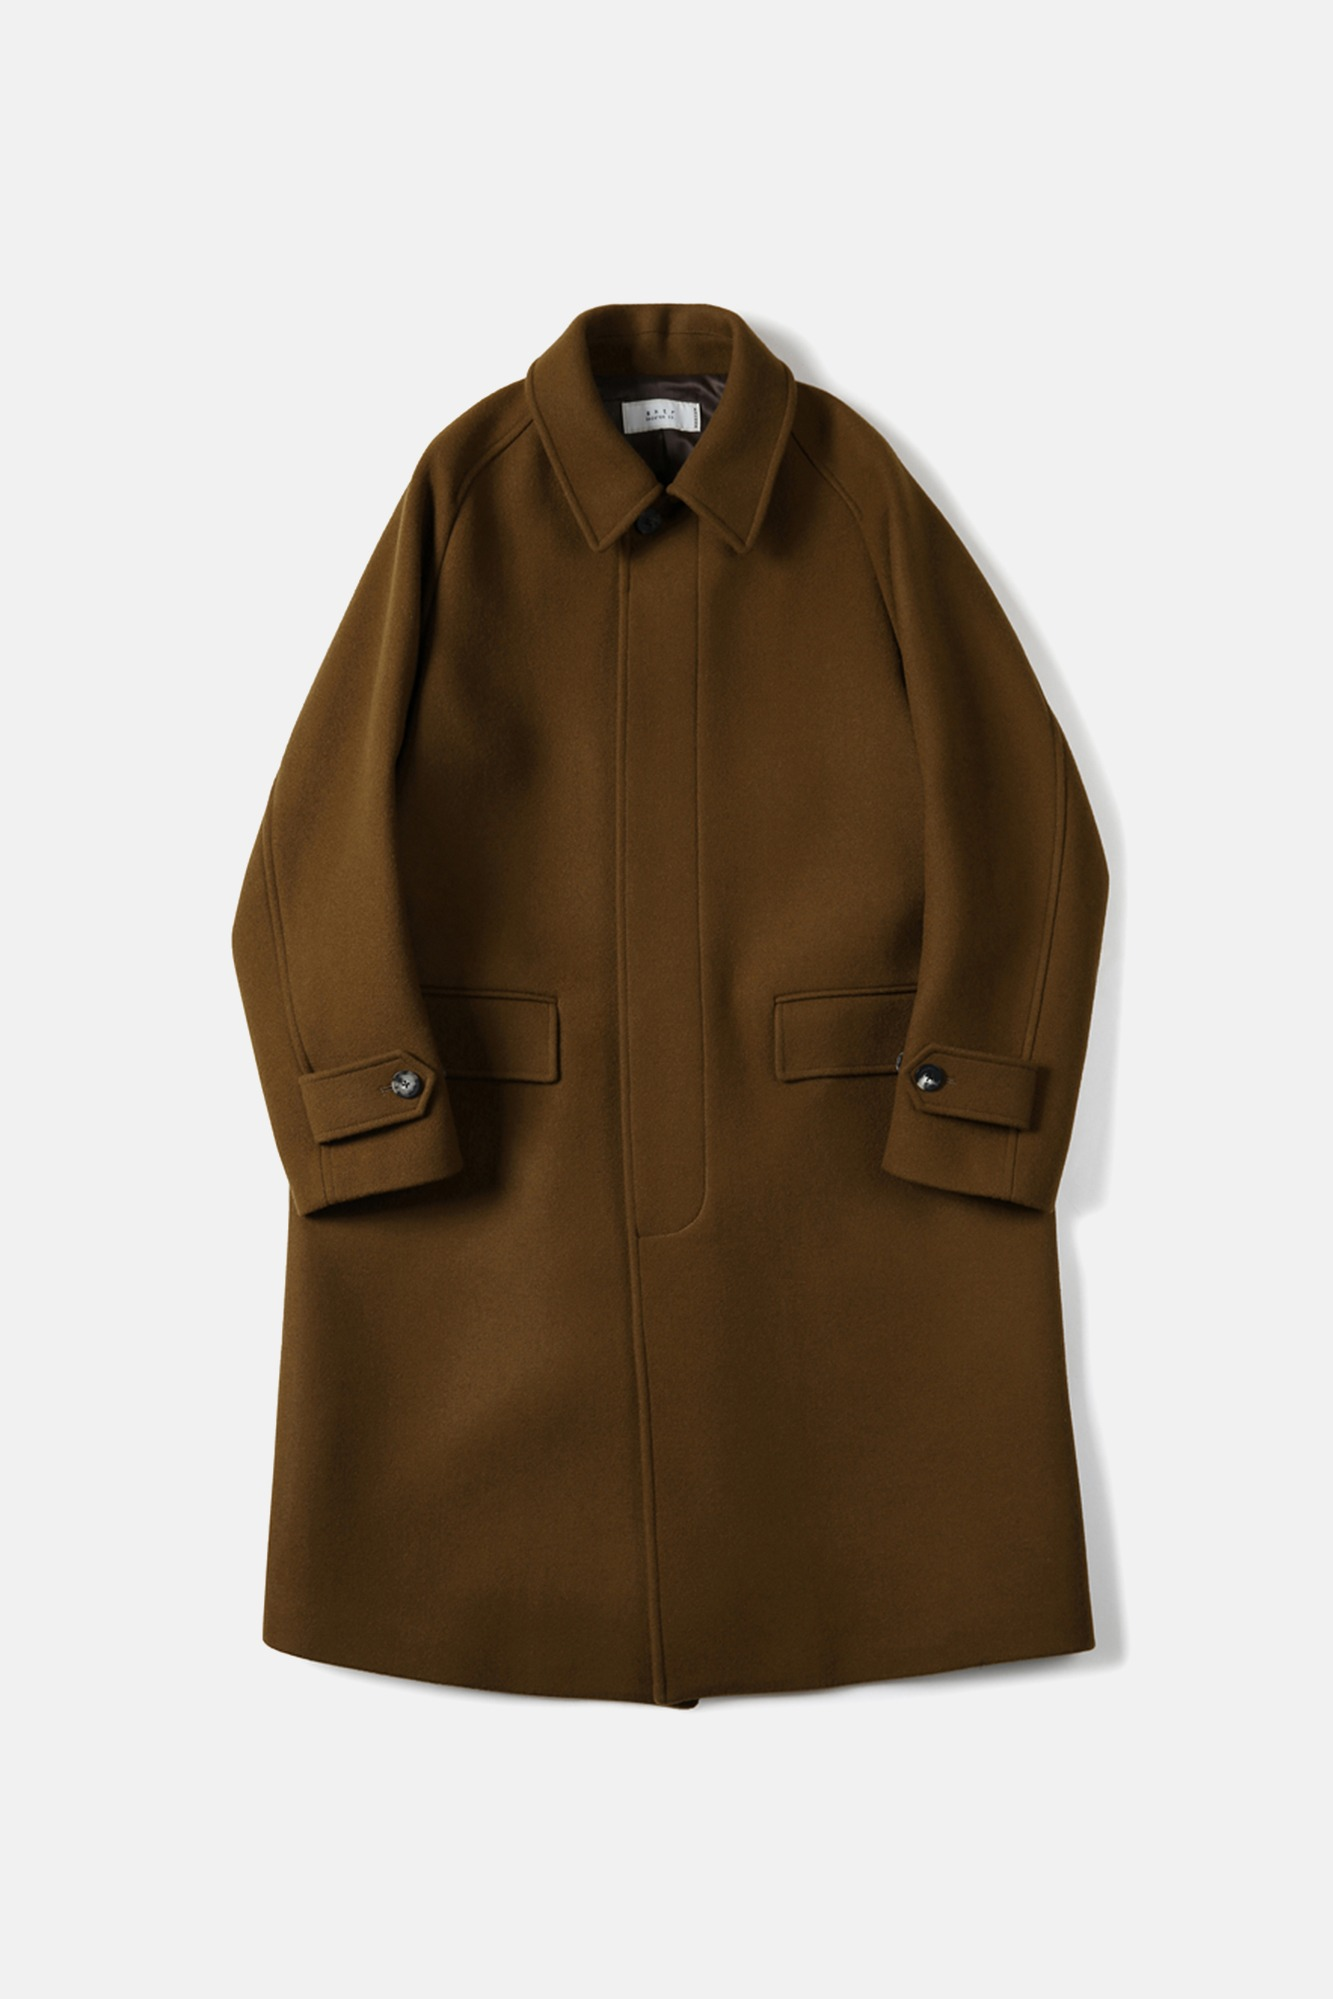 "SHIRTER Melton Wool Balmacaan Coat ""Sand Brown"""